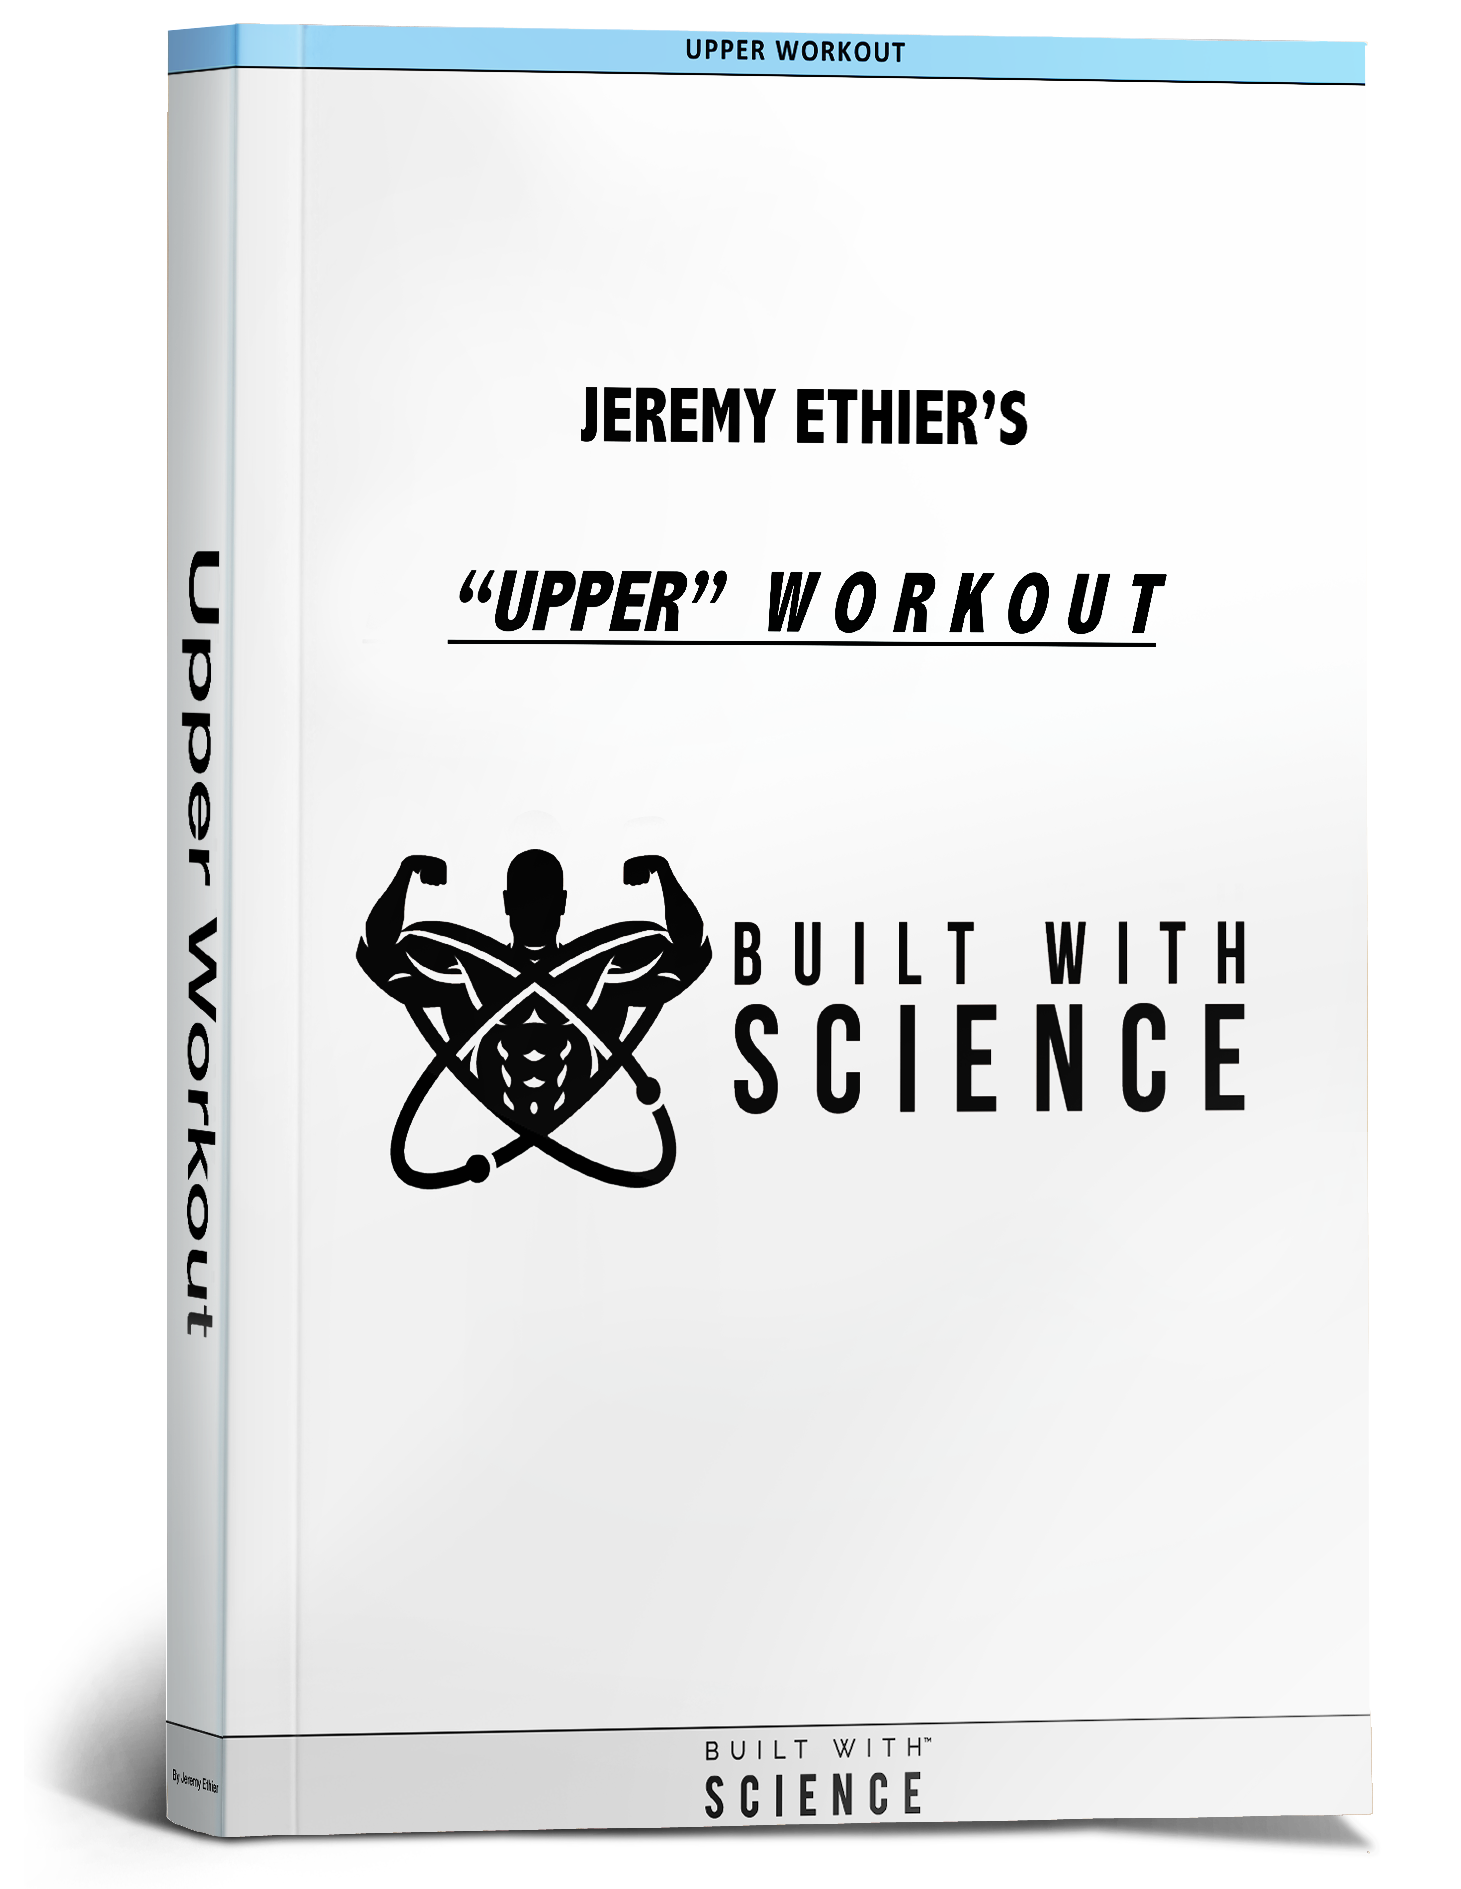 Upper Body Workout Plan for Muscle Growth (The Best Exercise